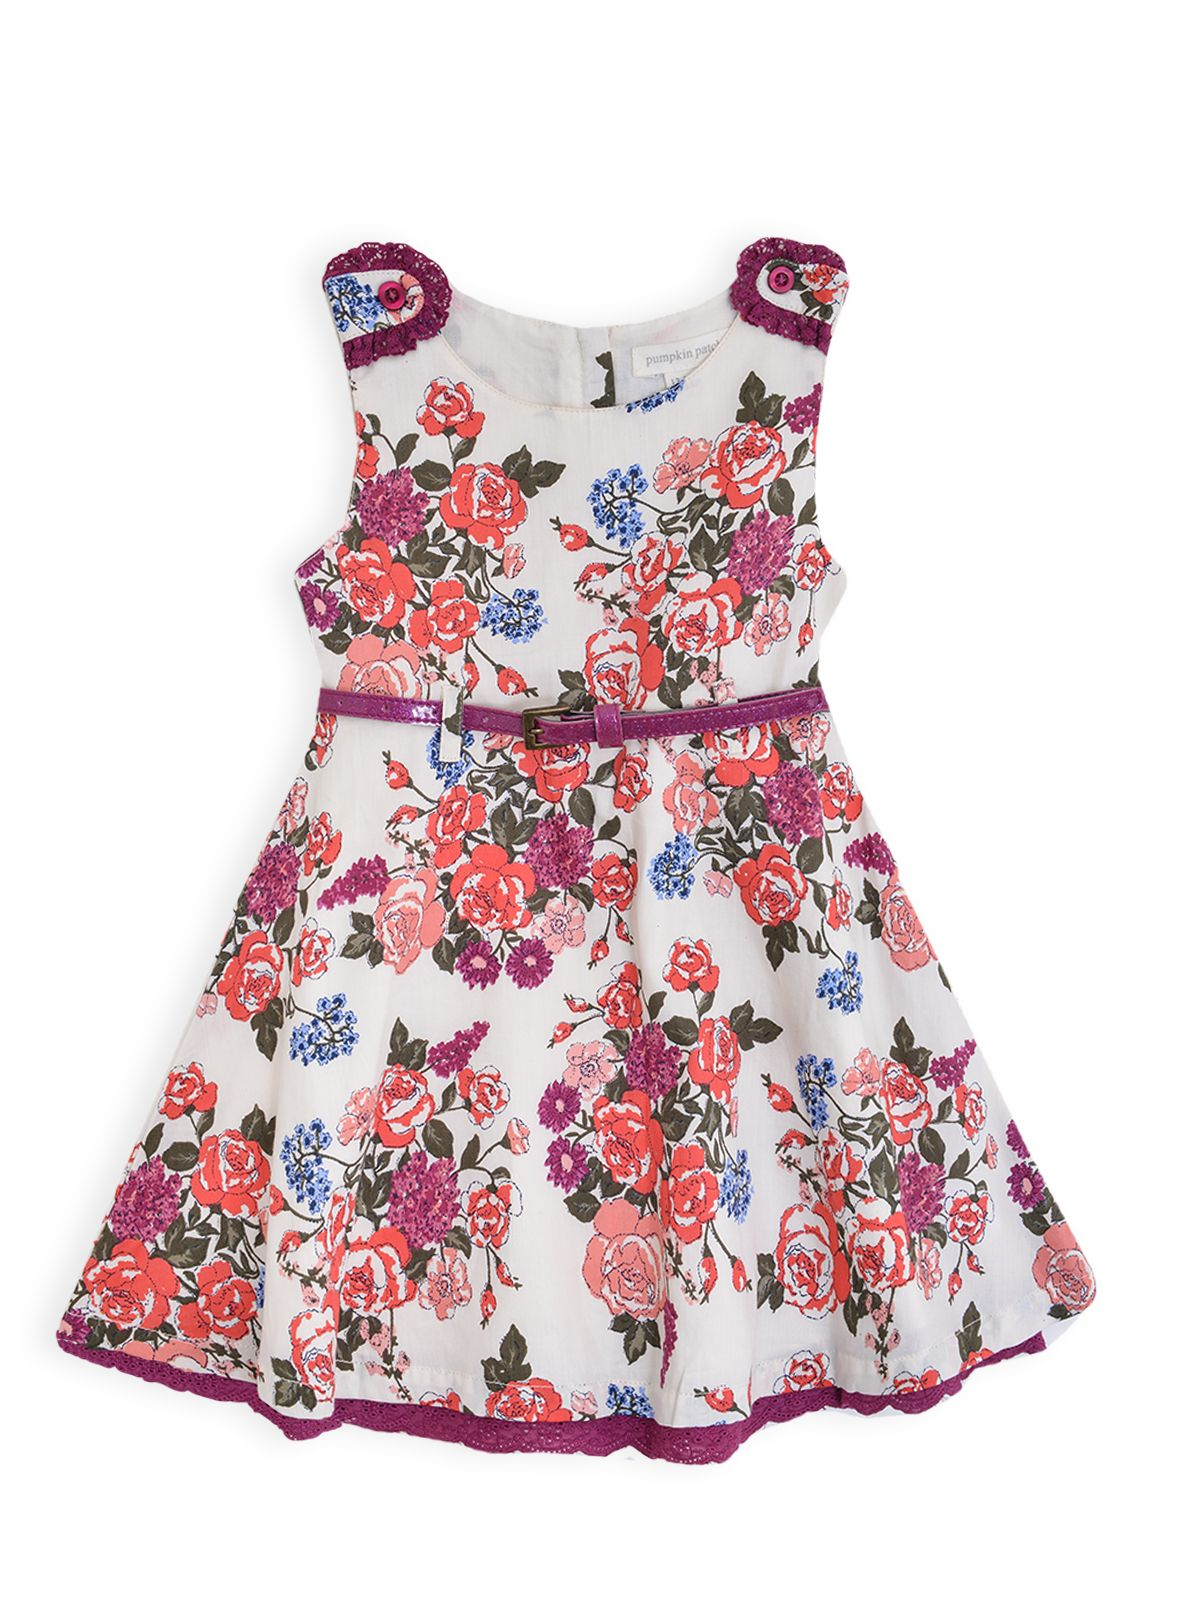 Girls belted floral dress